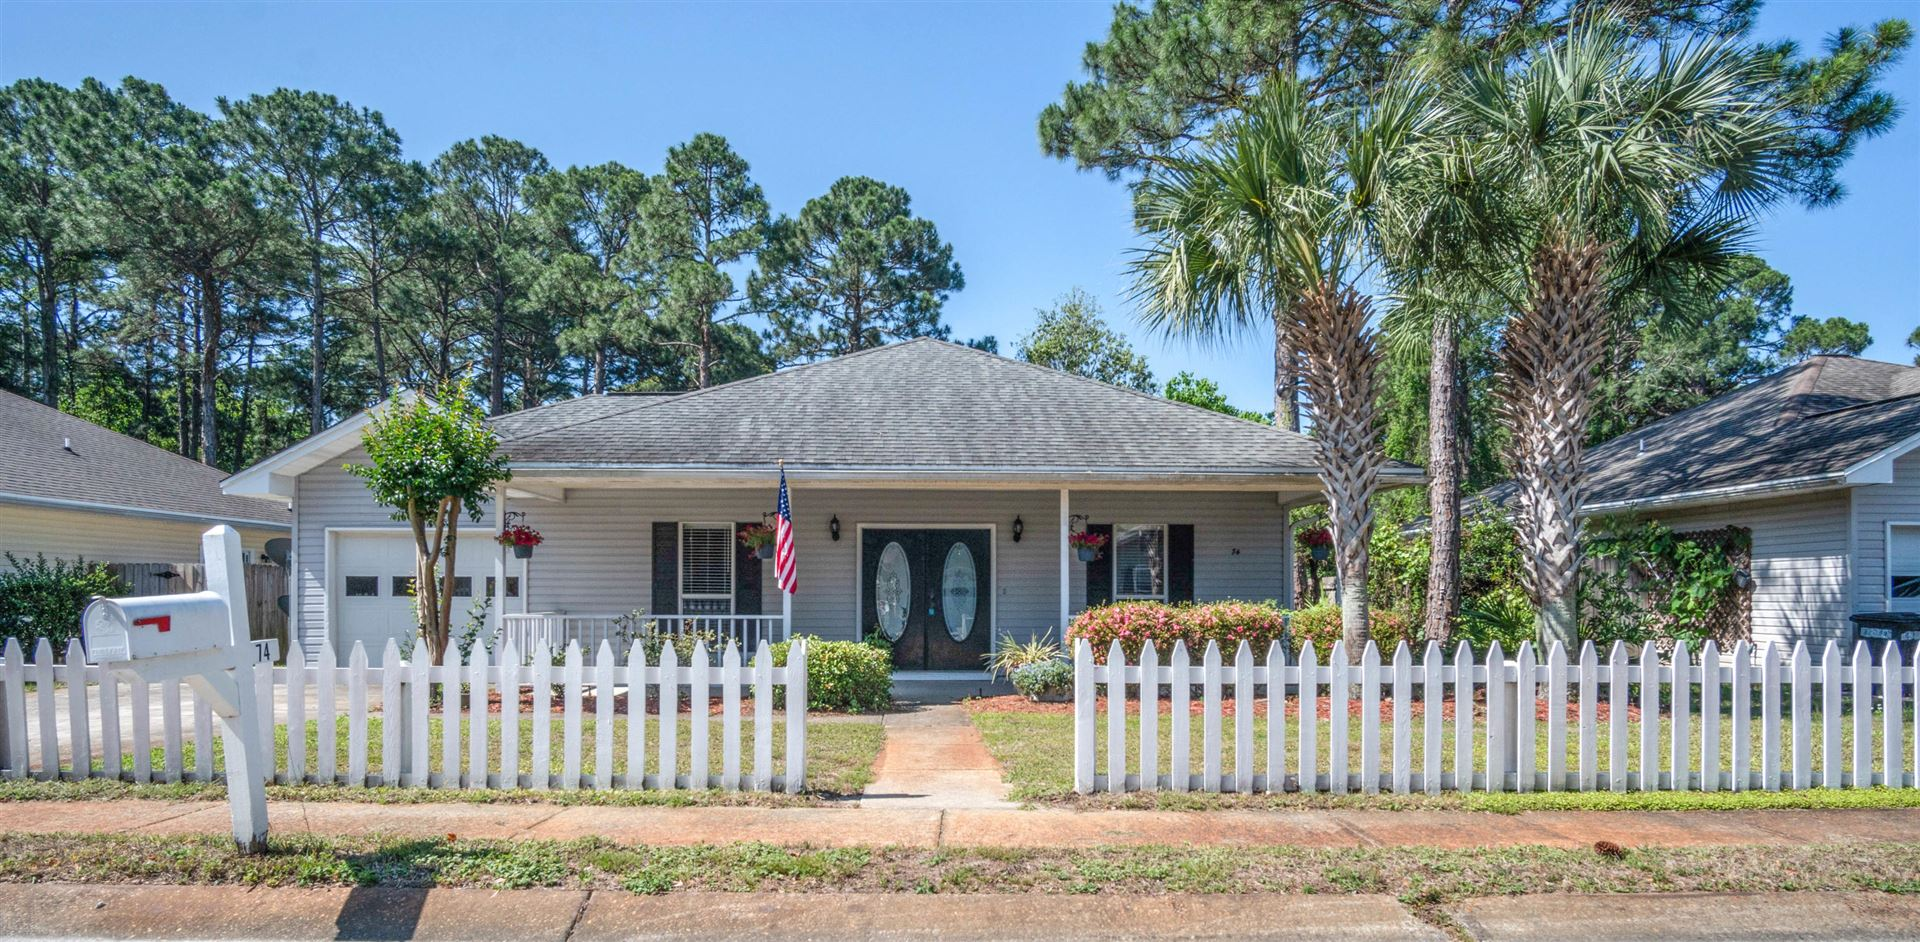 Property Image Of 74 Colony Park Drive In Miramar Beach, Fl